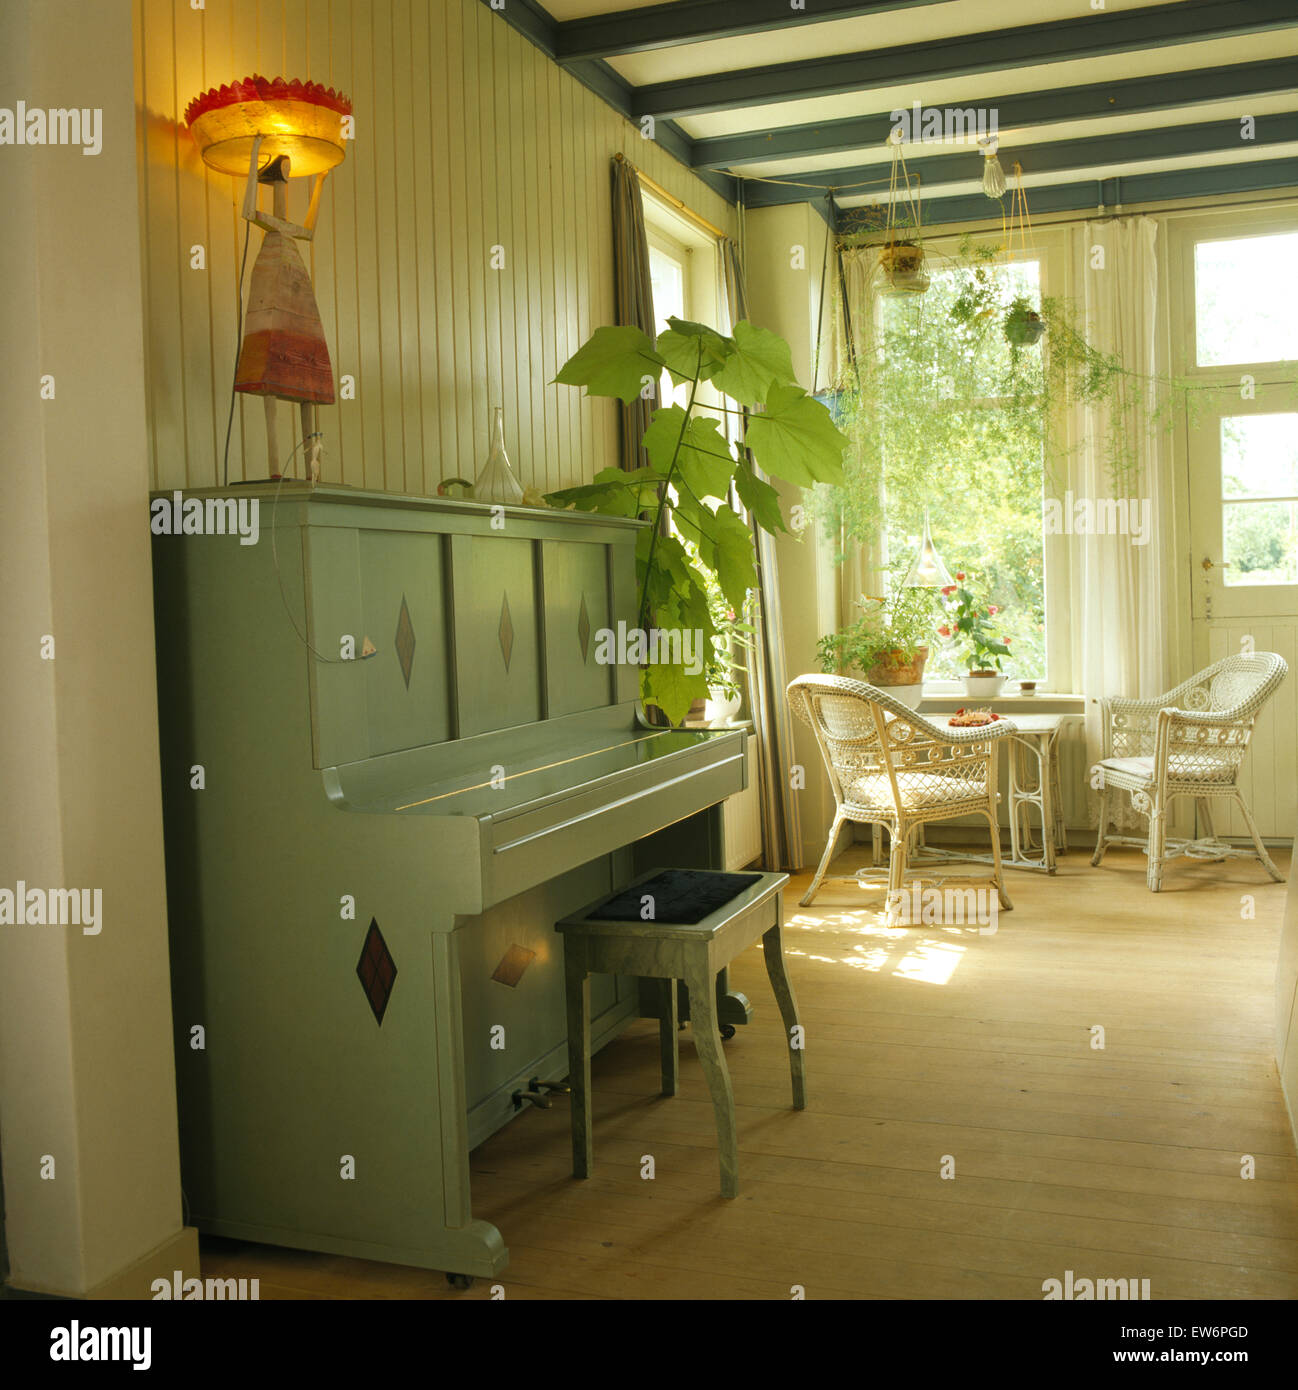 green painted furniture. Pale Green Painted Piano In Dutch Hall With Wicker Furniture And Wooden Flooring N